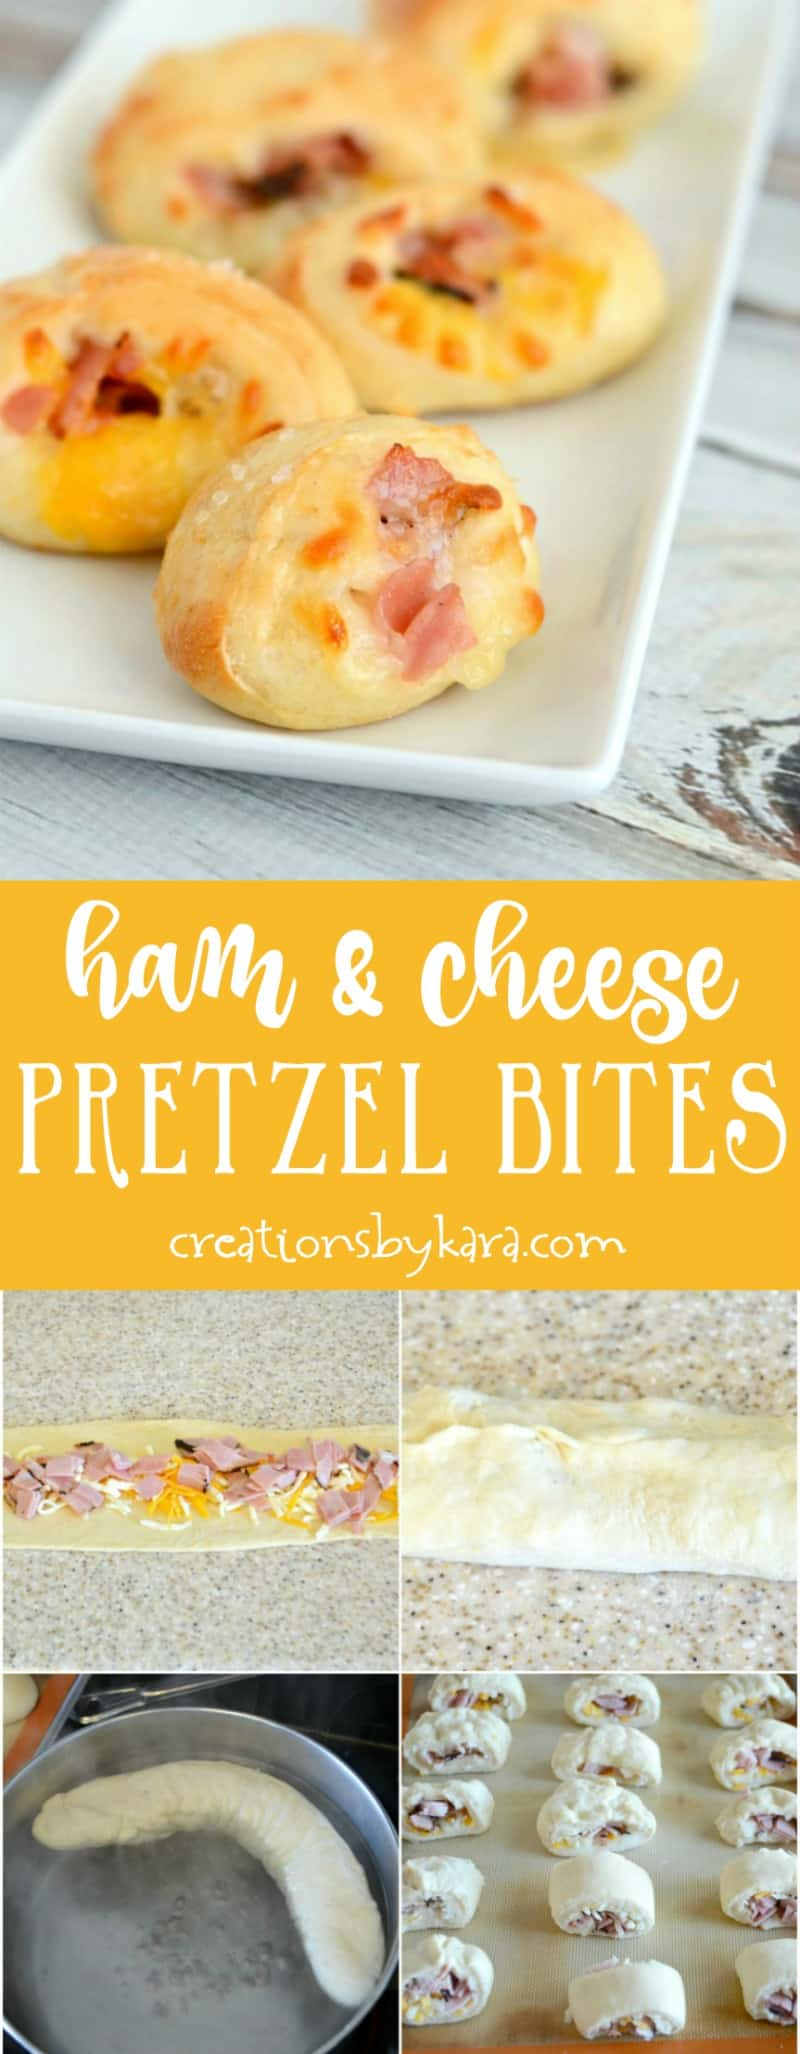 Ham and Cheese Pretzel Bites - everyone loves these appetizers! They are a perfect appetizer recipe for any occasion.